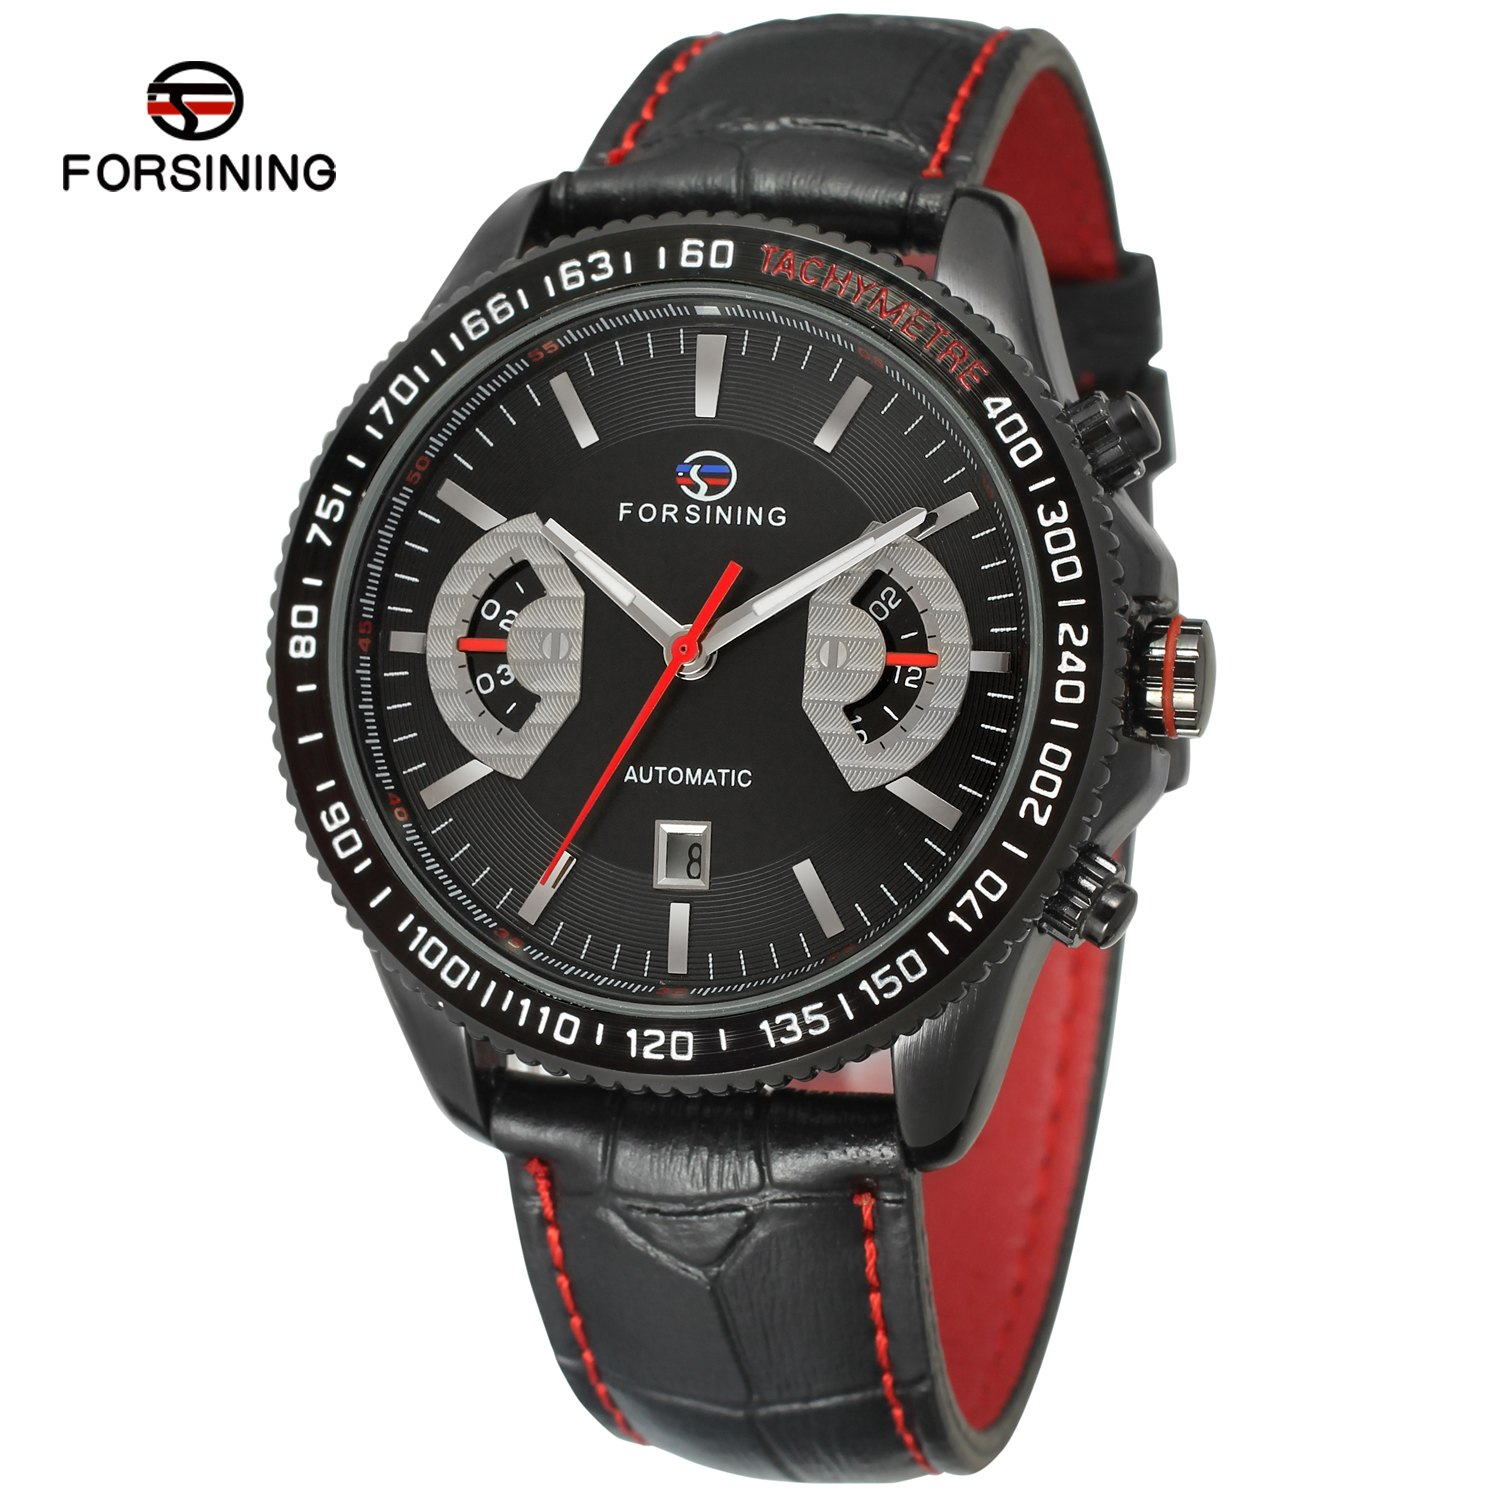 FORSINING Luxury Leather Strap Men Skeleton Automatic Watches Auto Date Calendar Dial Mens Military Mechanical Watch Gift<br>